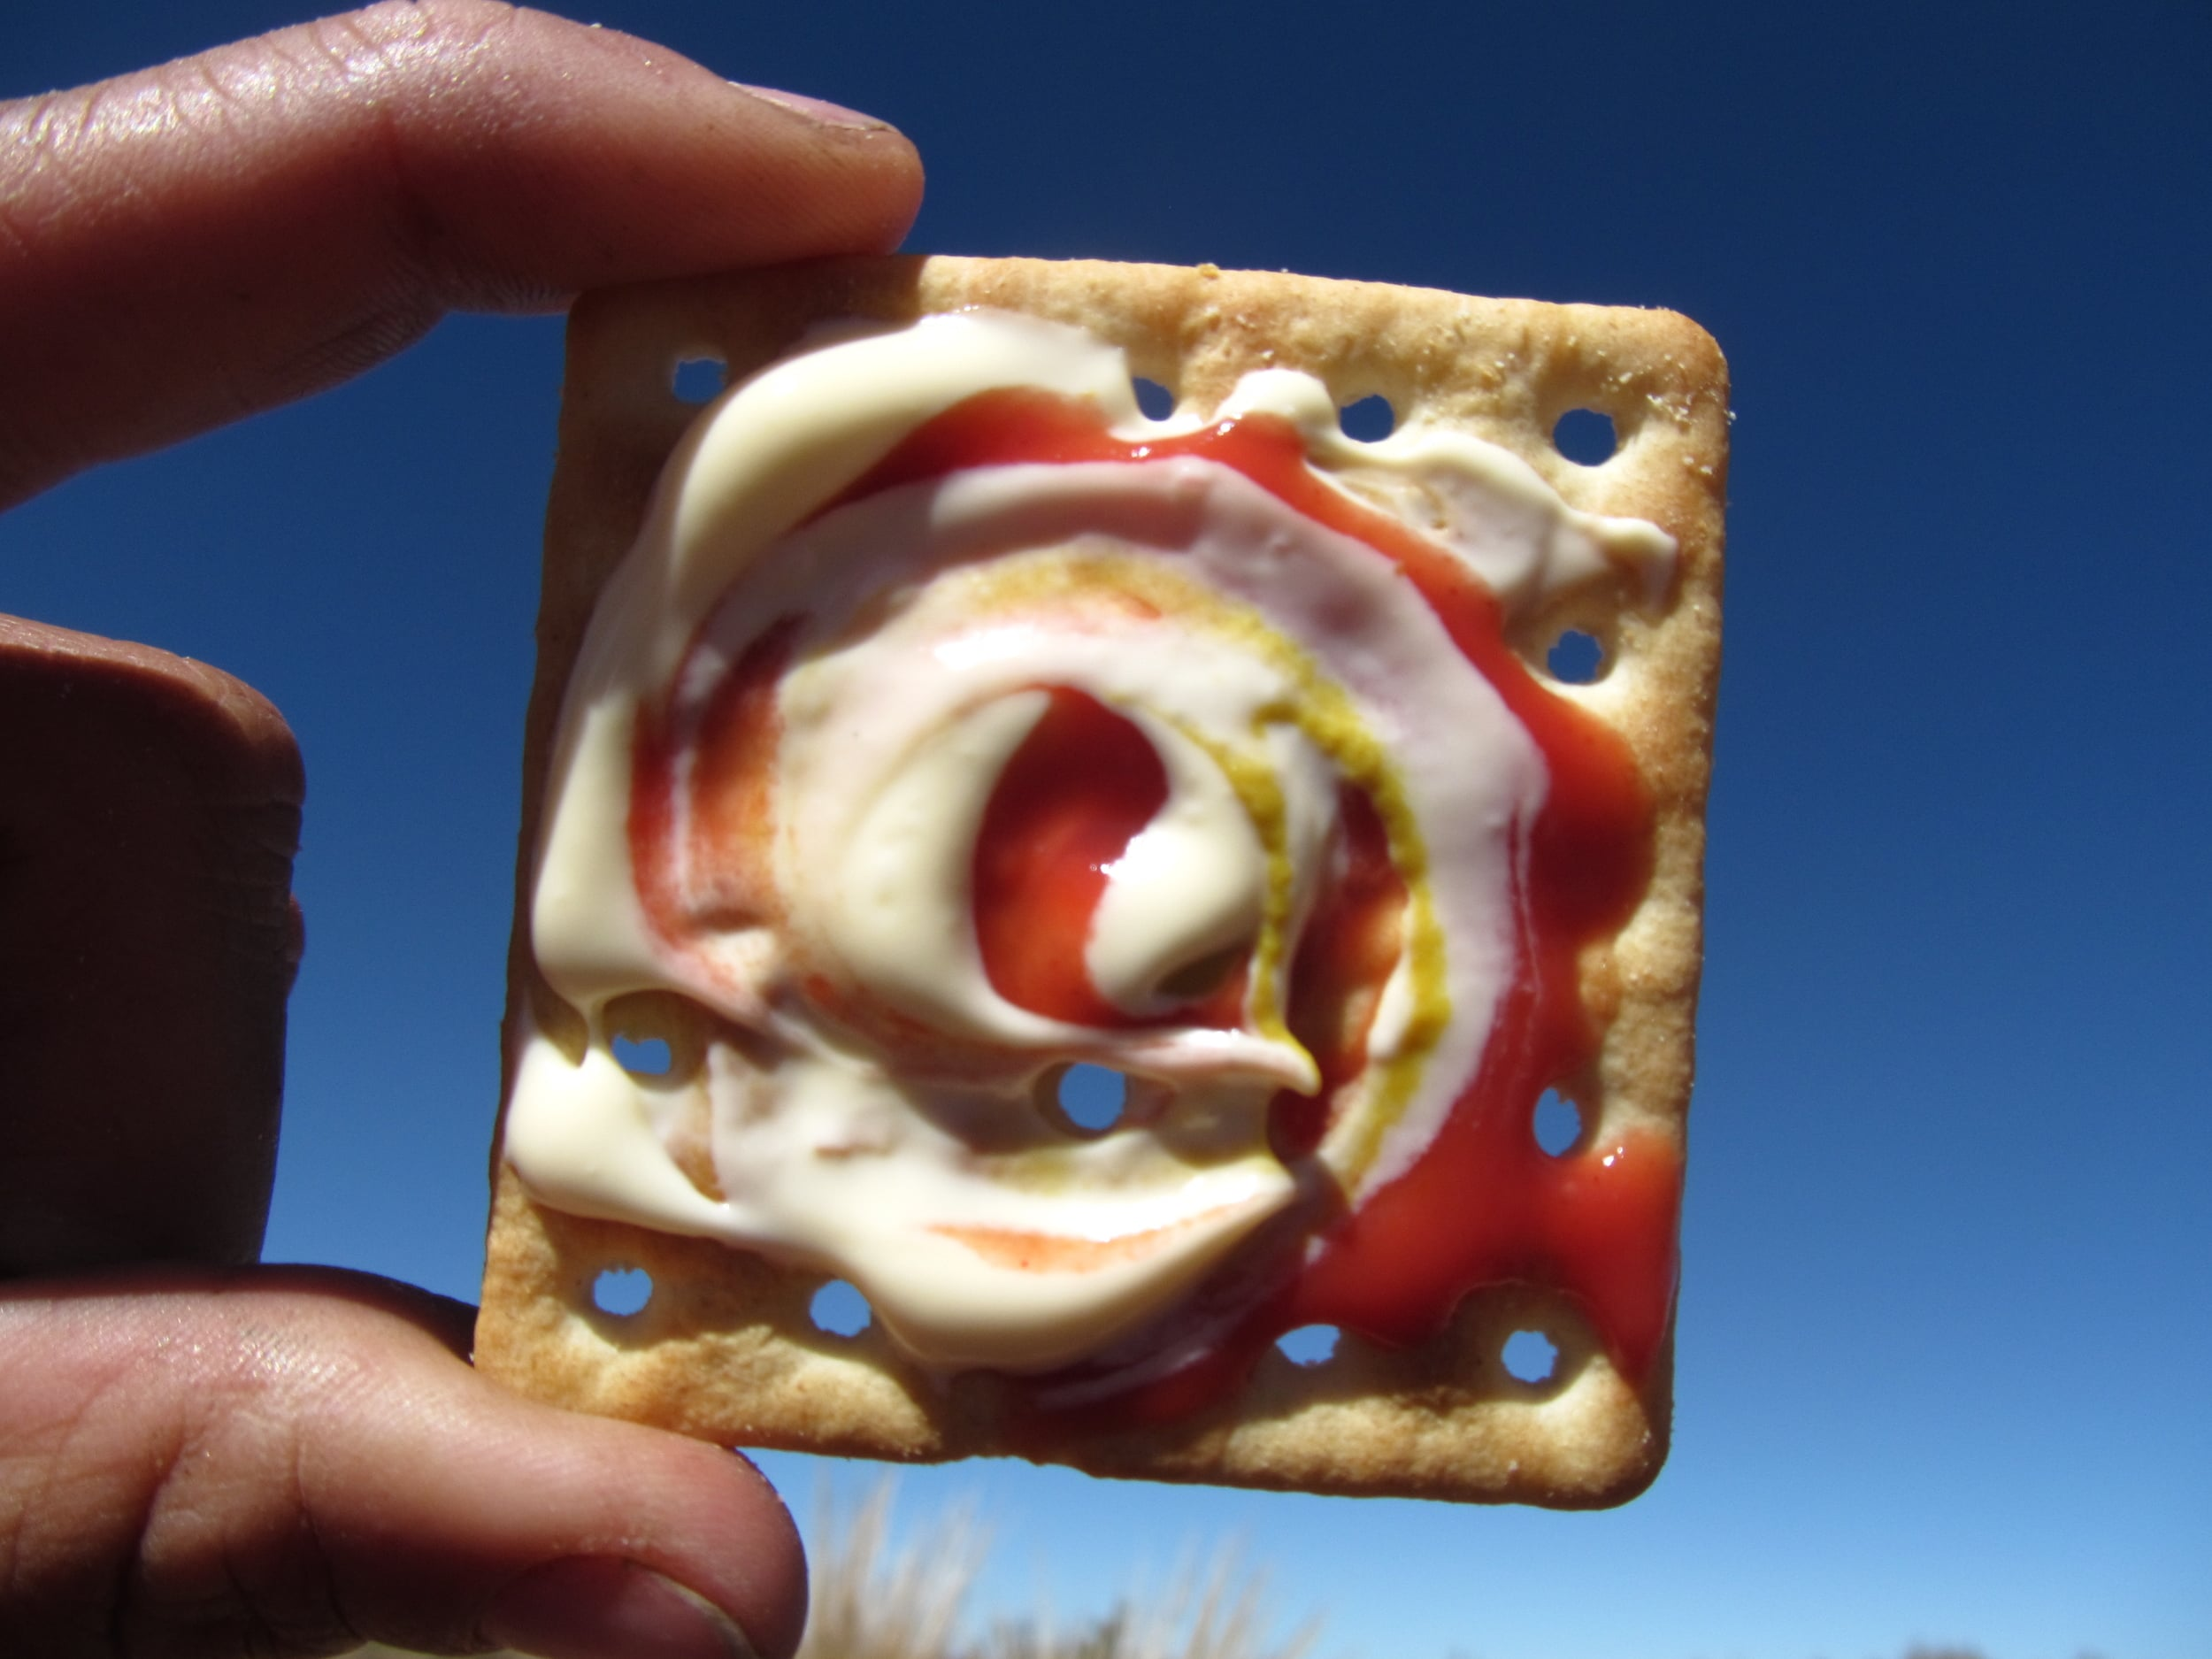 The Trifecta Swirl: a dizzing blend of ketchup, mayo, and mustard.